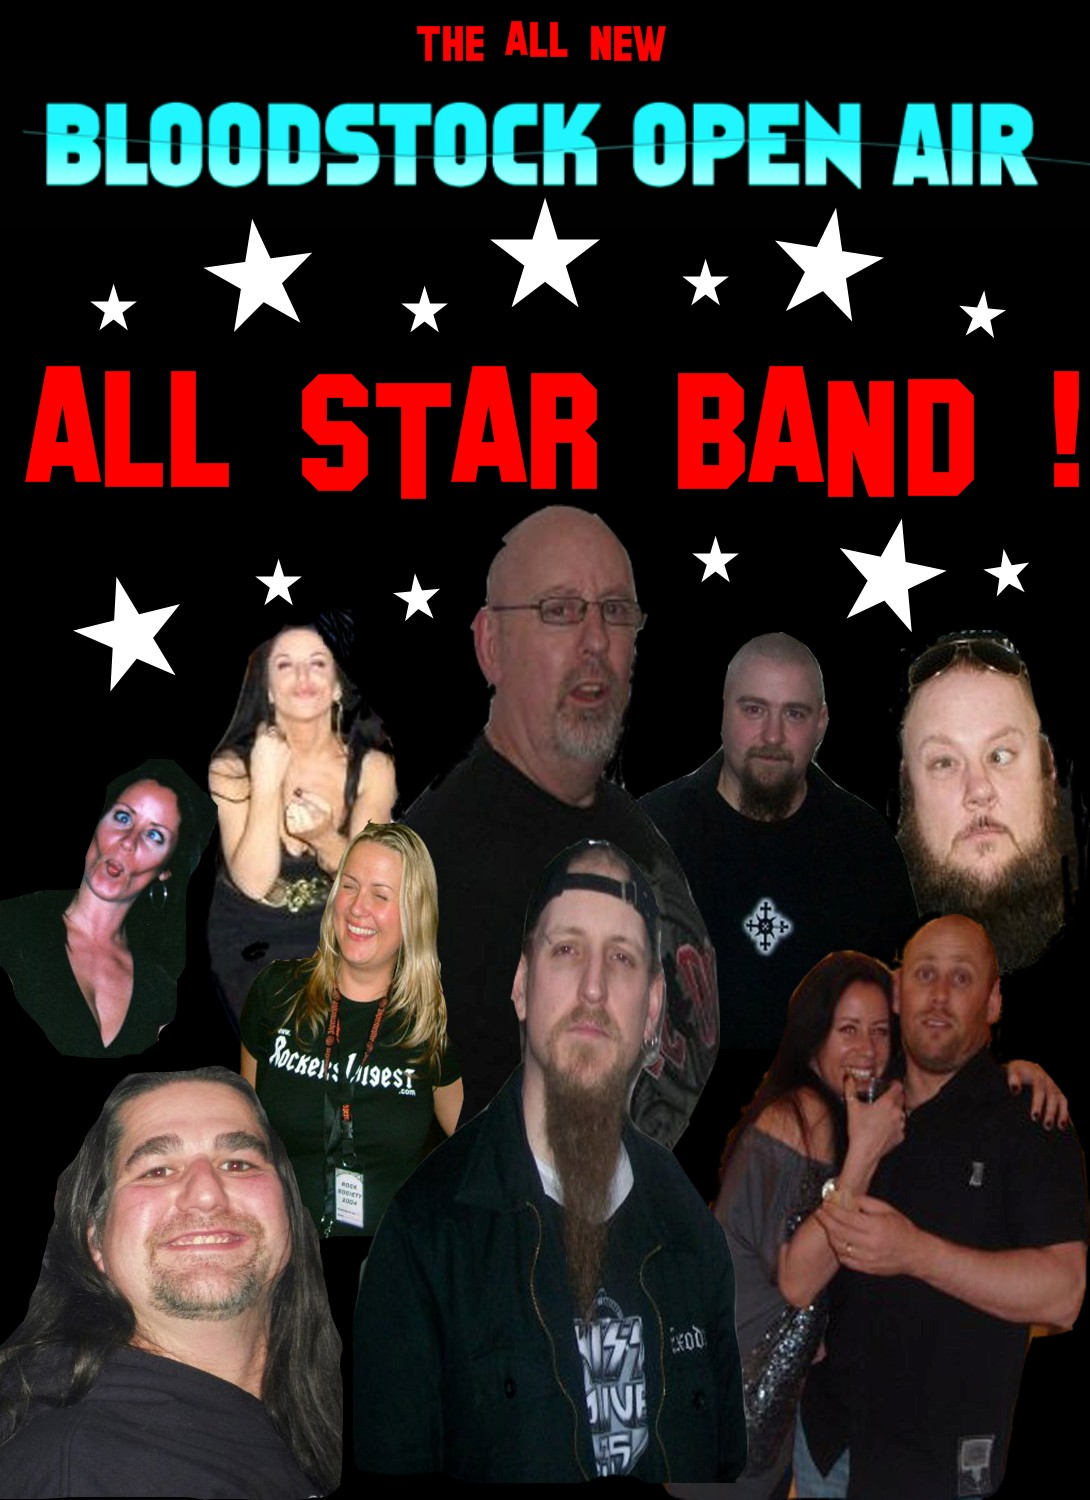 BLOODSTOCK ALL STAR BAND!